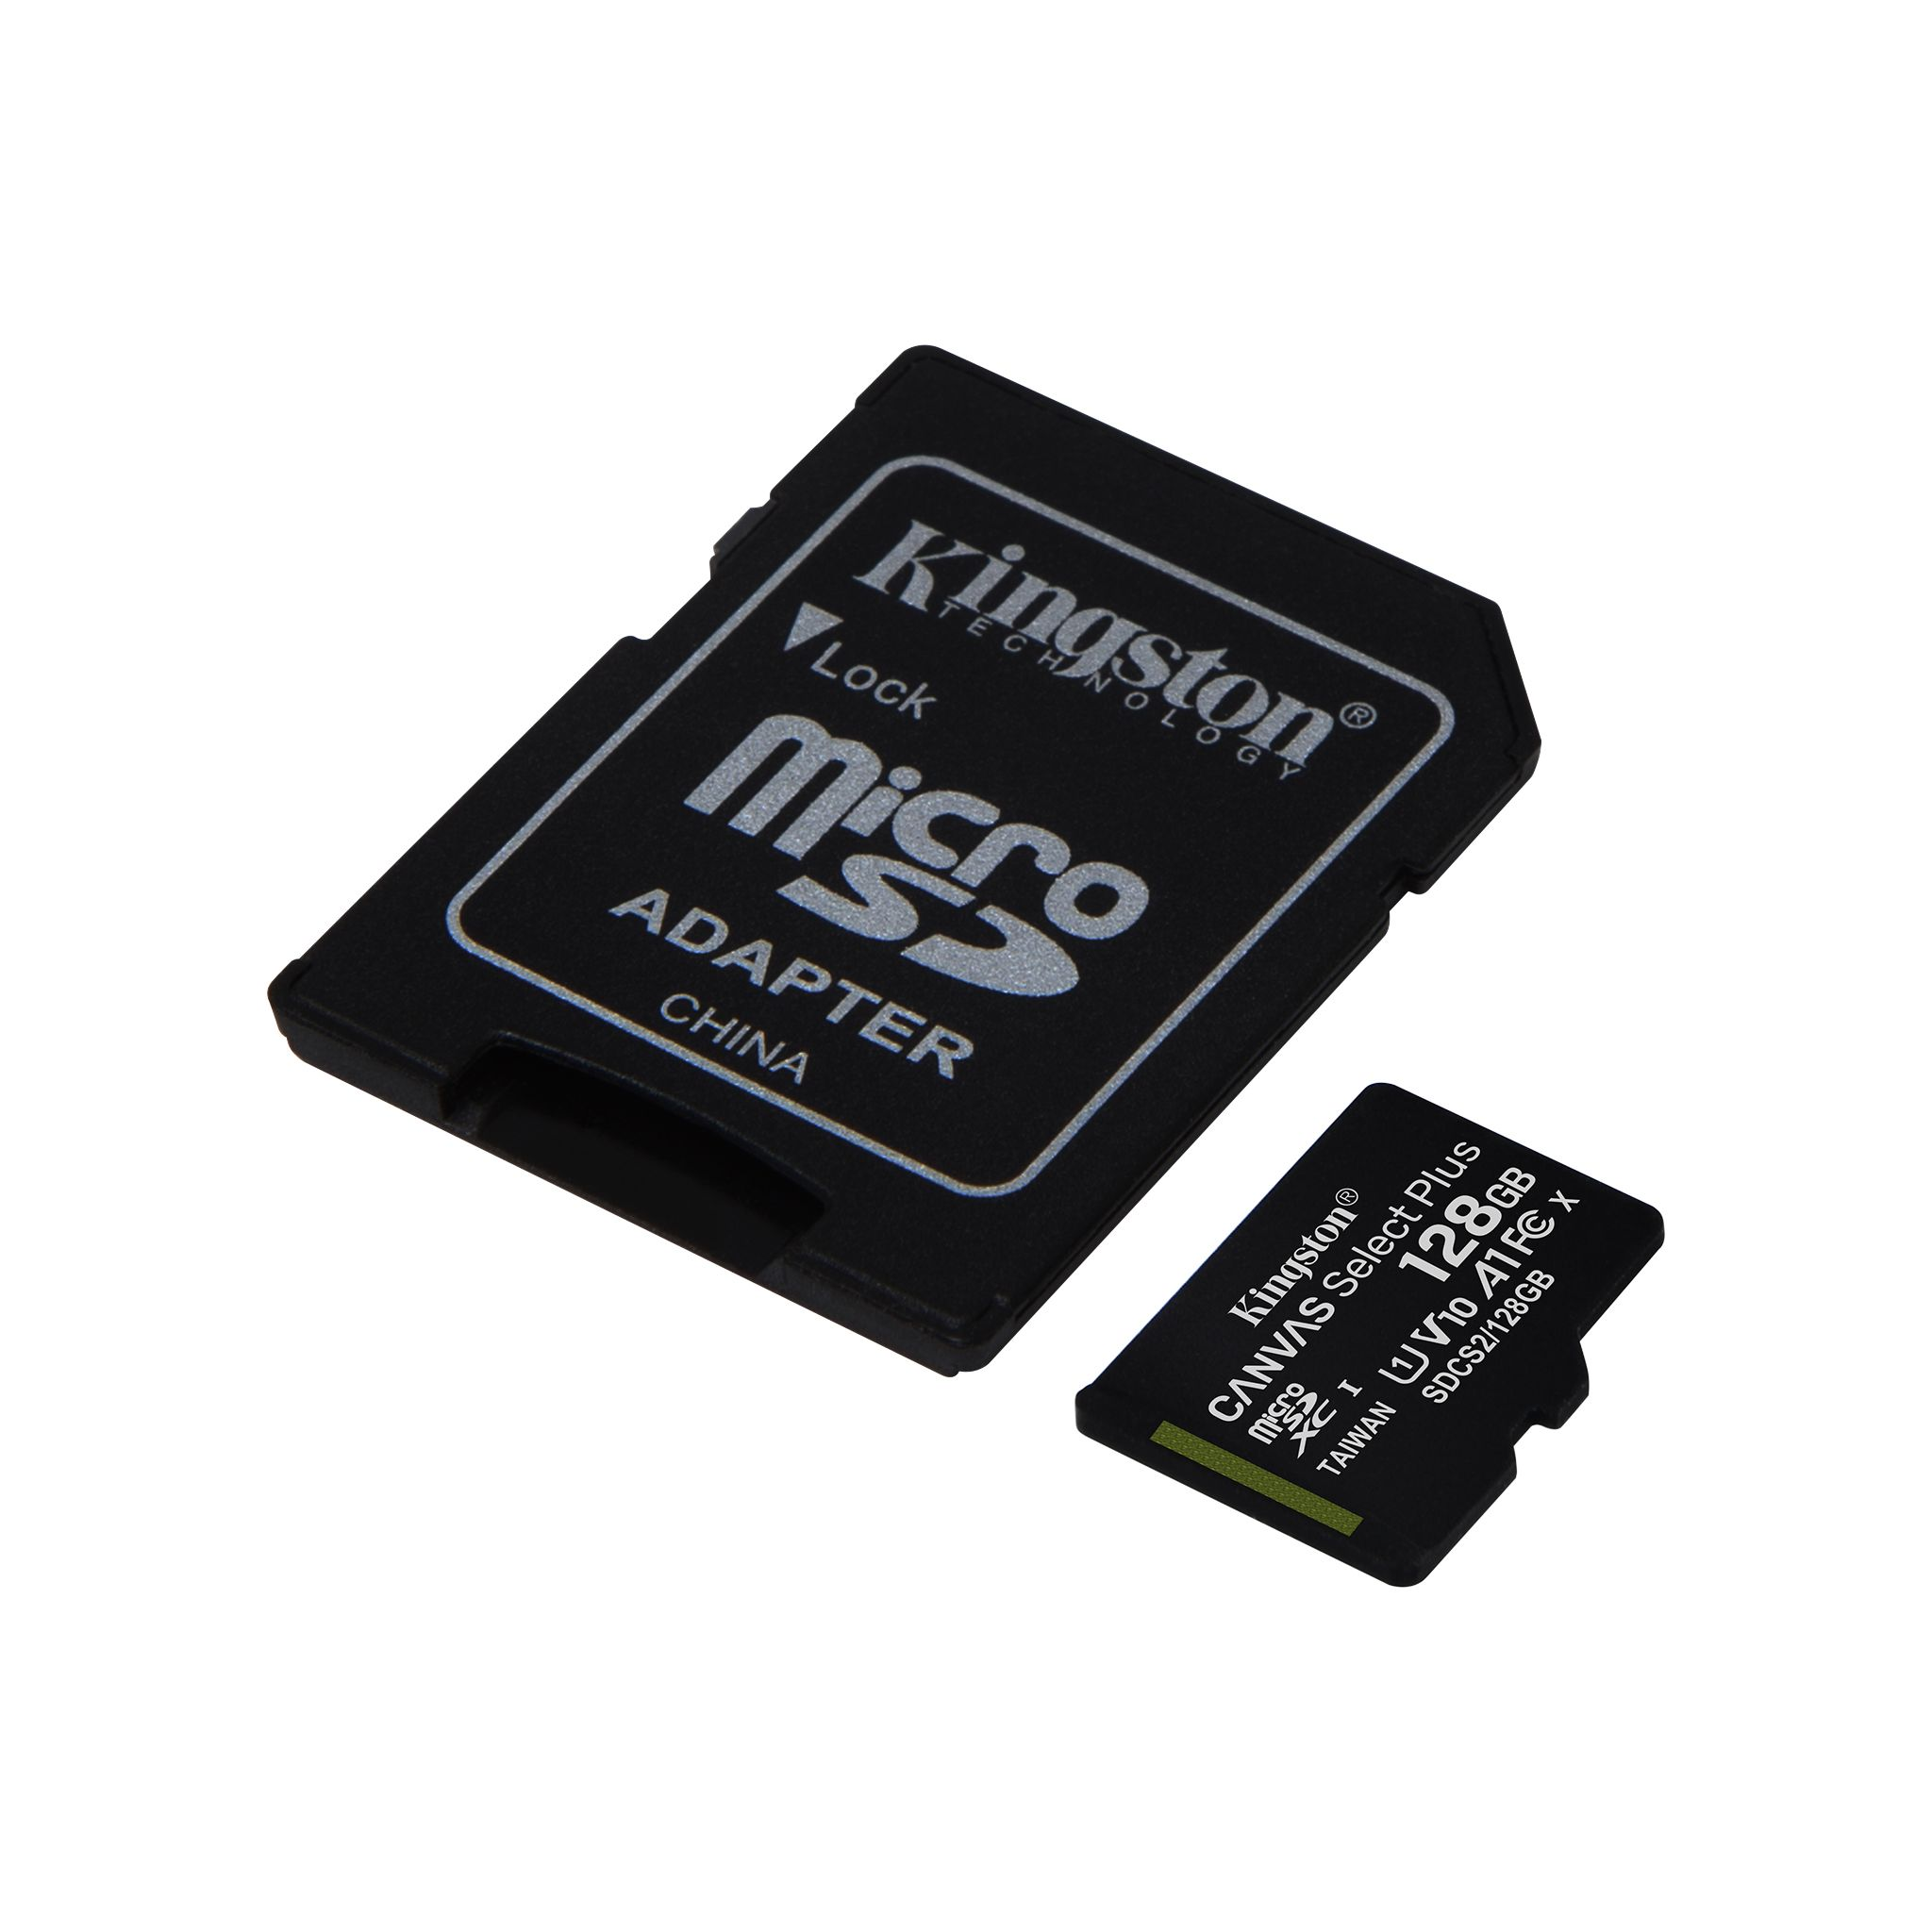 100MBs Works with Kingston Kingston 64GB Micromax A119 MicroSDXC Canvas Select Plus Card Verified by SanFlash.